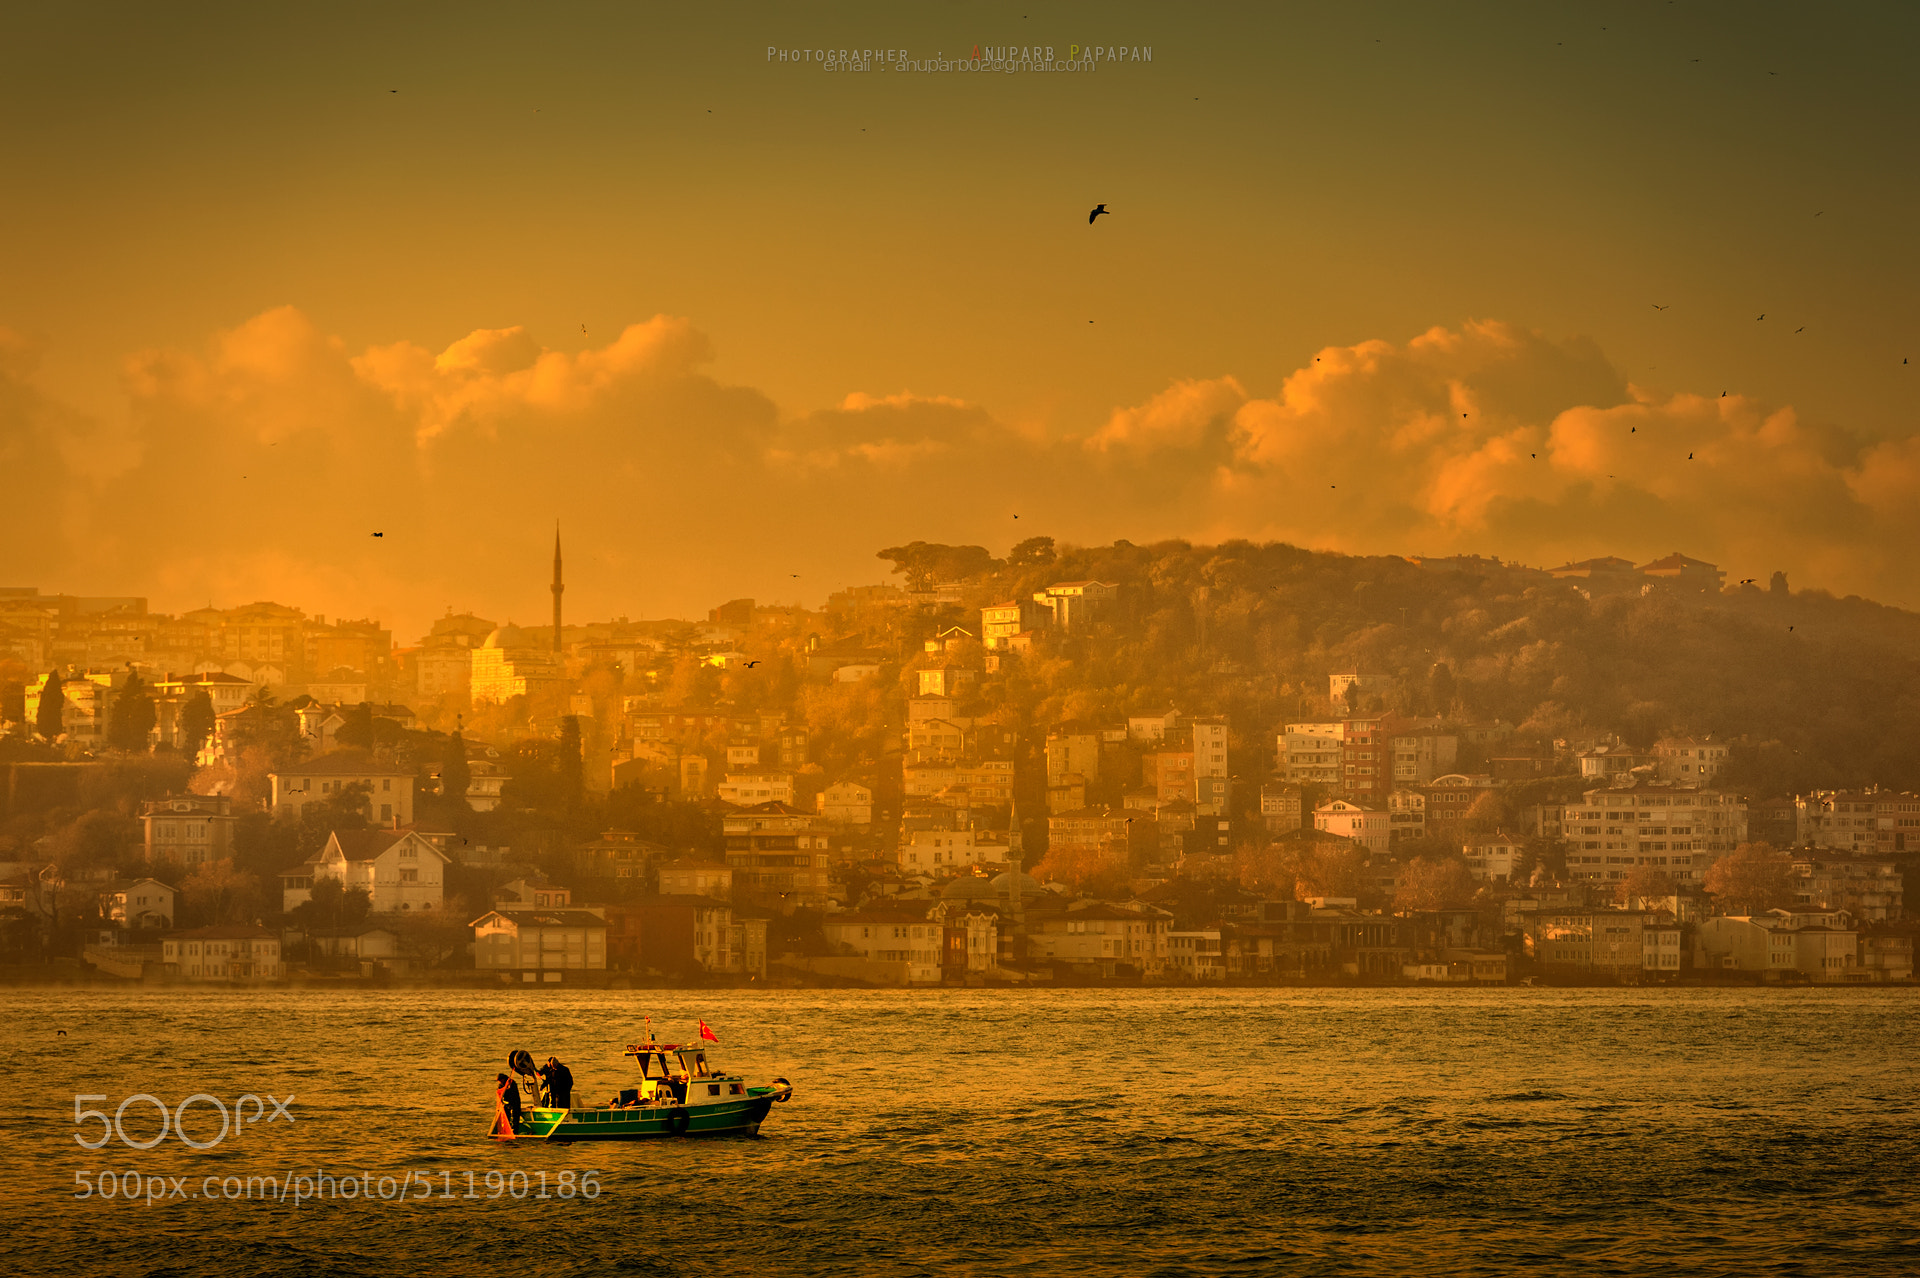 Photograph Morning at Bosphorus Strait by Anuparb Papapan on 500px